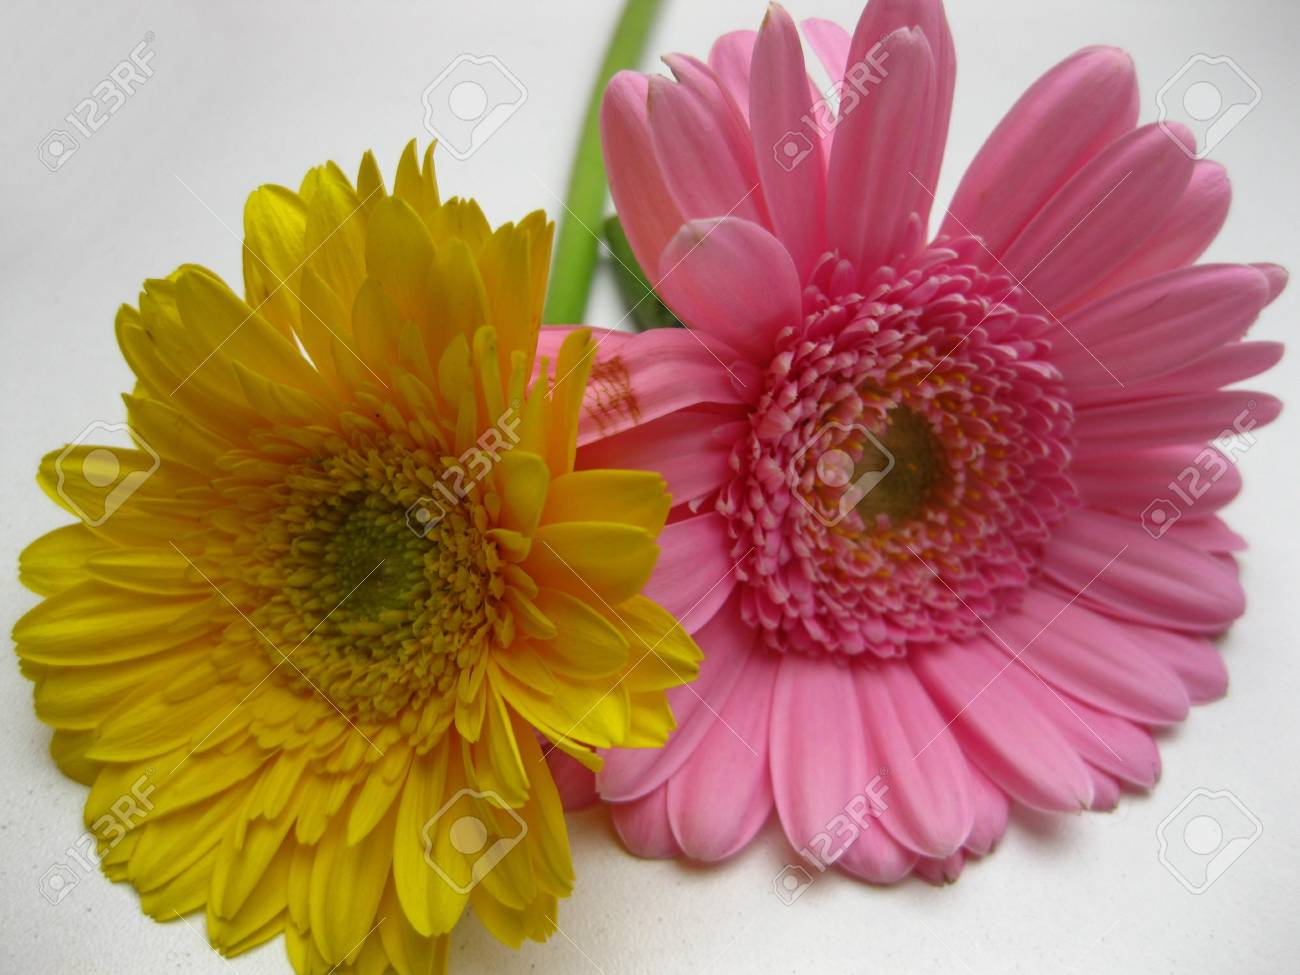 yellow and pink daisies Stock Photo - 4206670